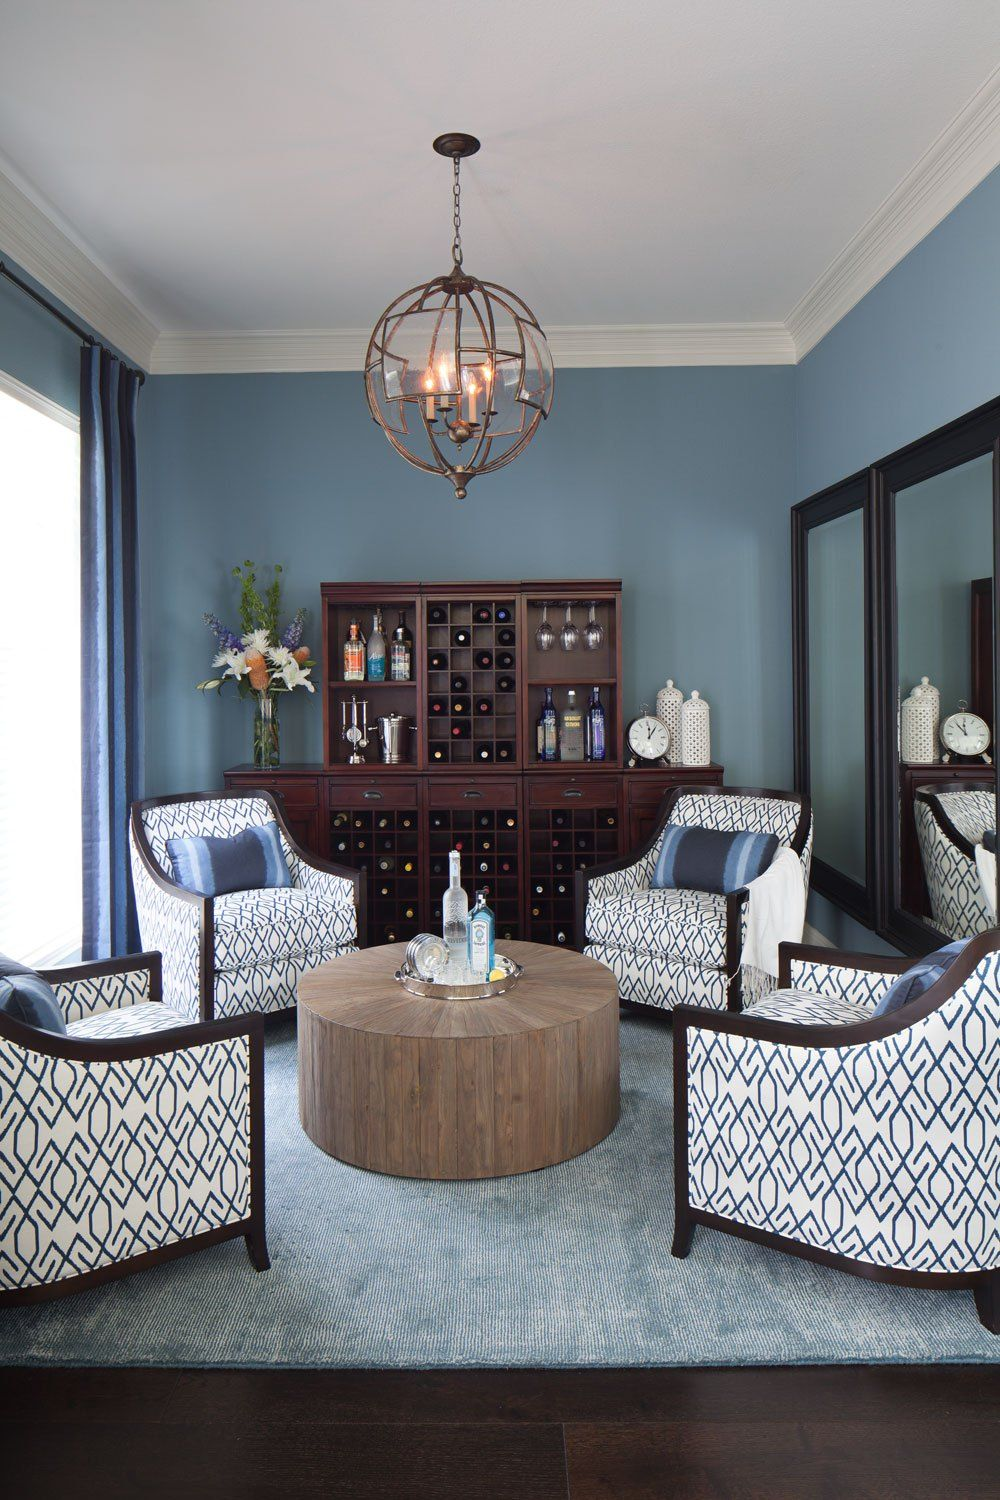 15 circular conversation seating areas 4 chairs around a coffee table the indigo lattice